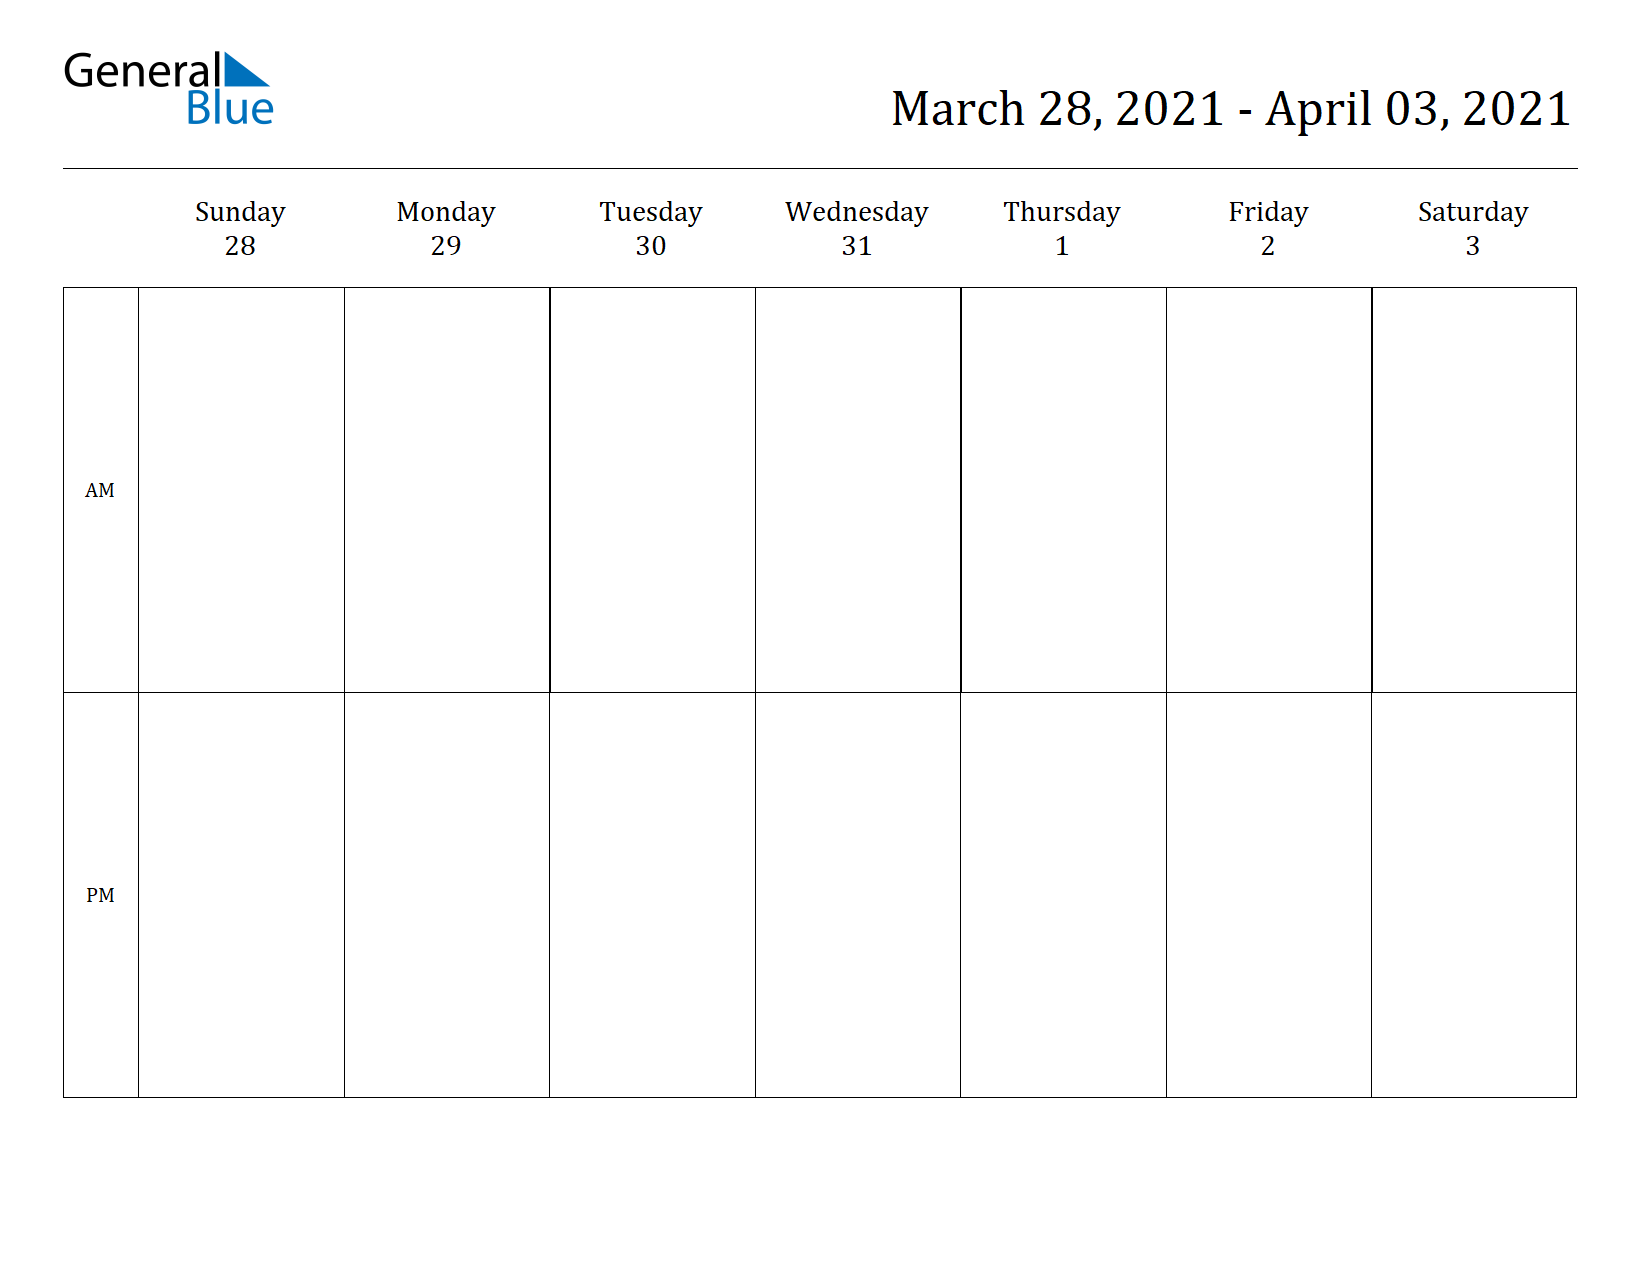 Weekly Calendar for Mar 28, 2021 to Apr 03, 2021